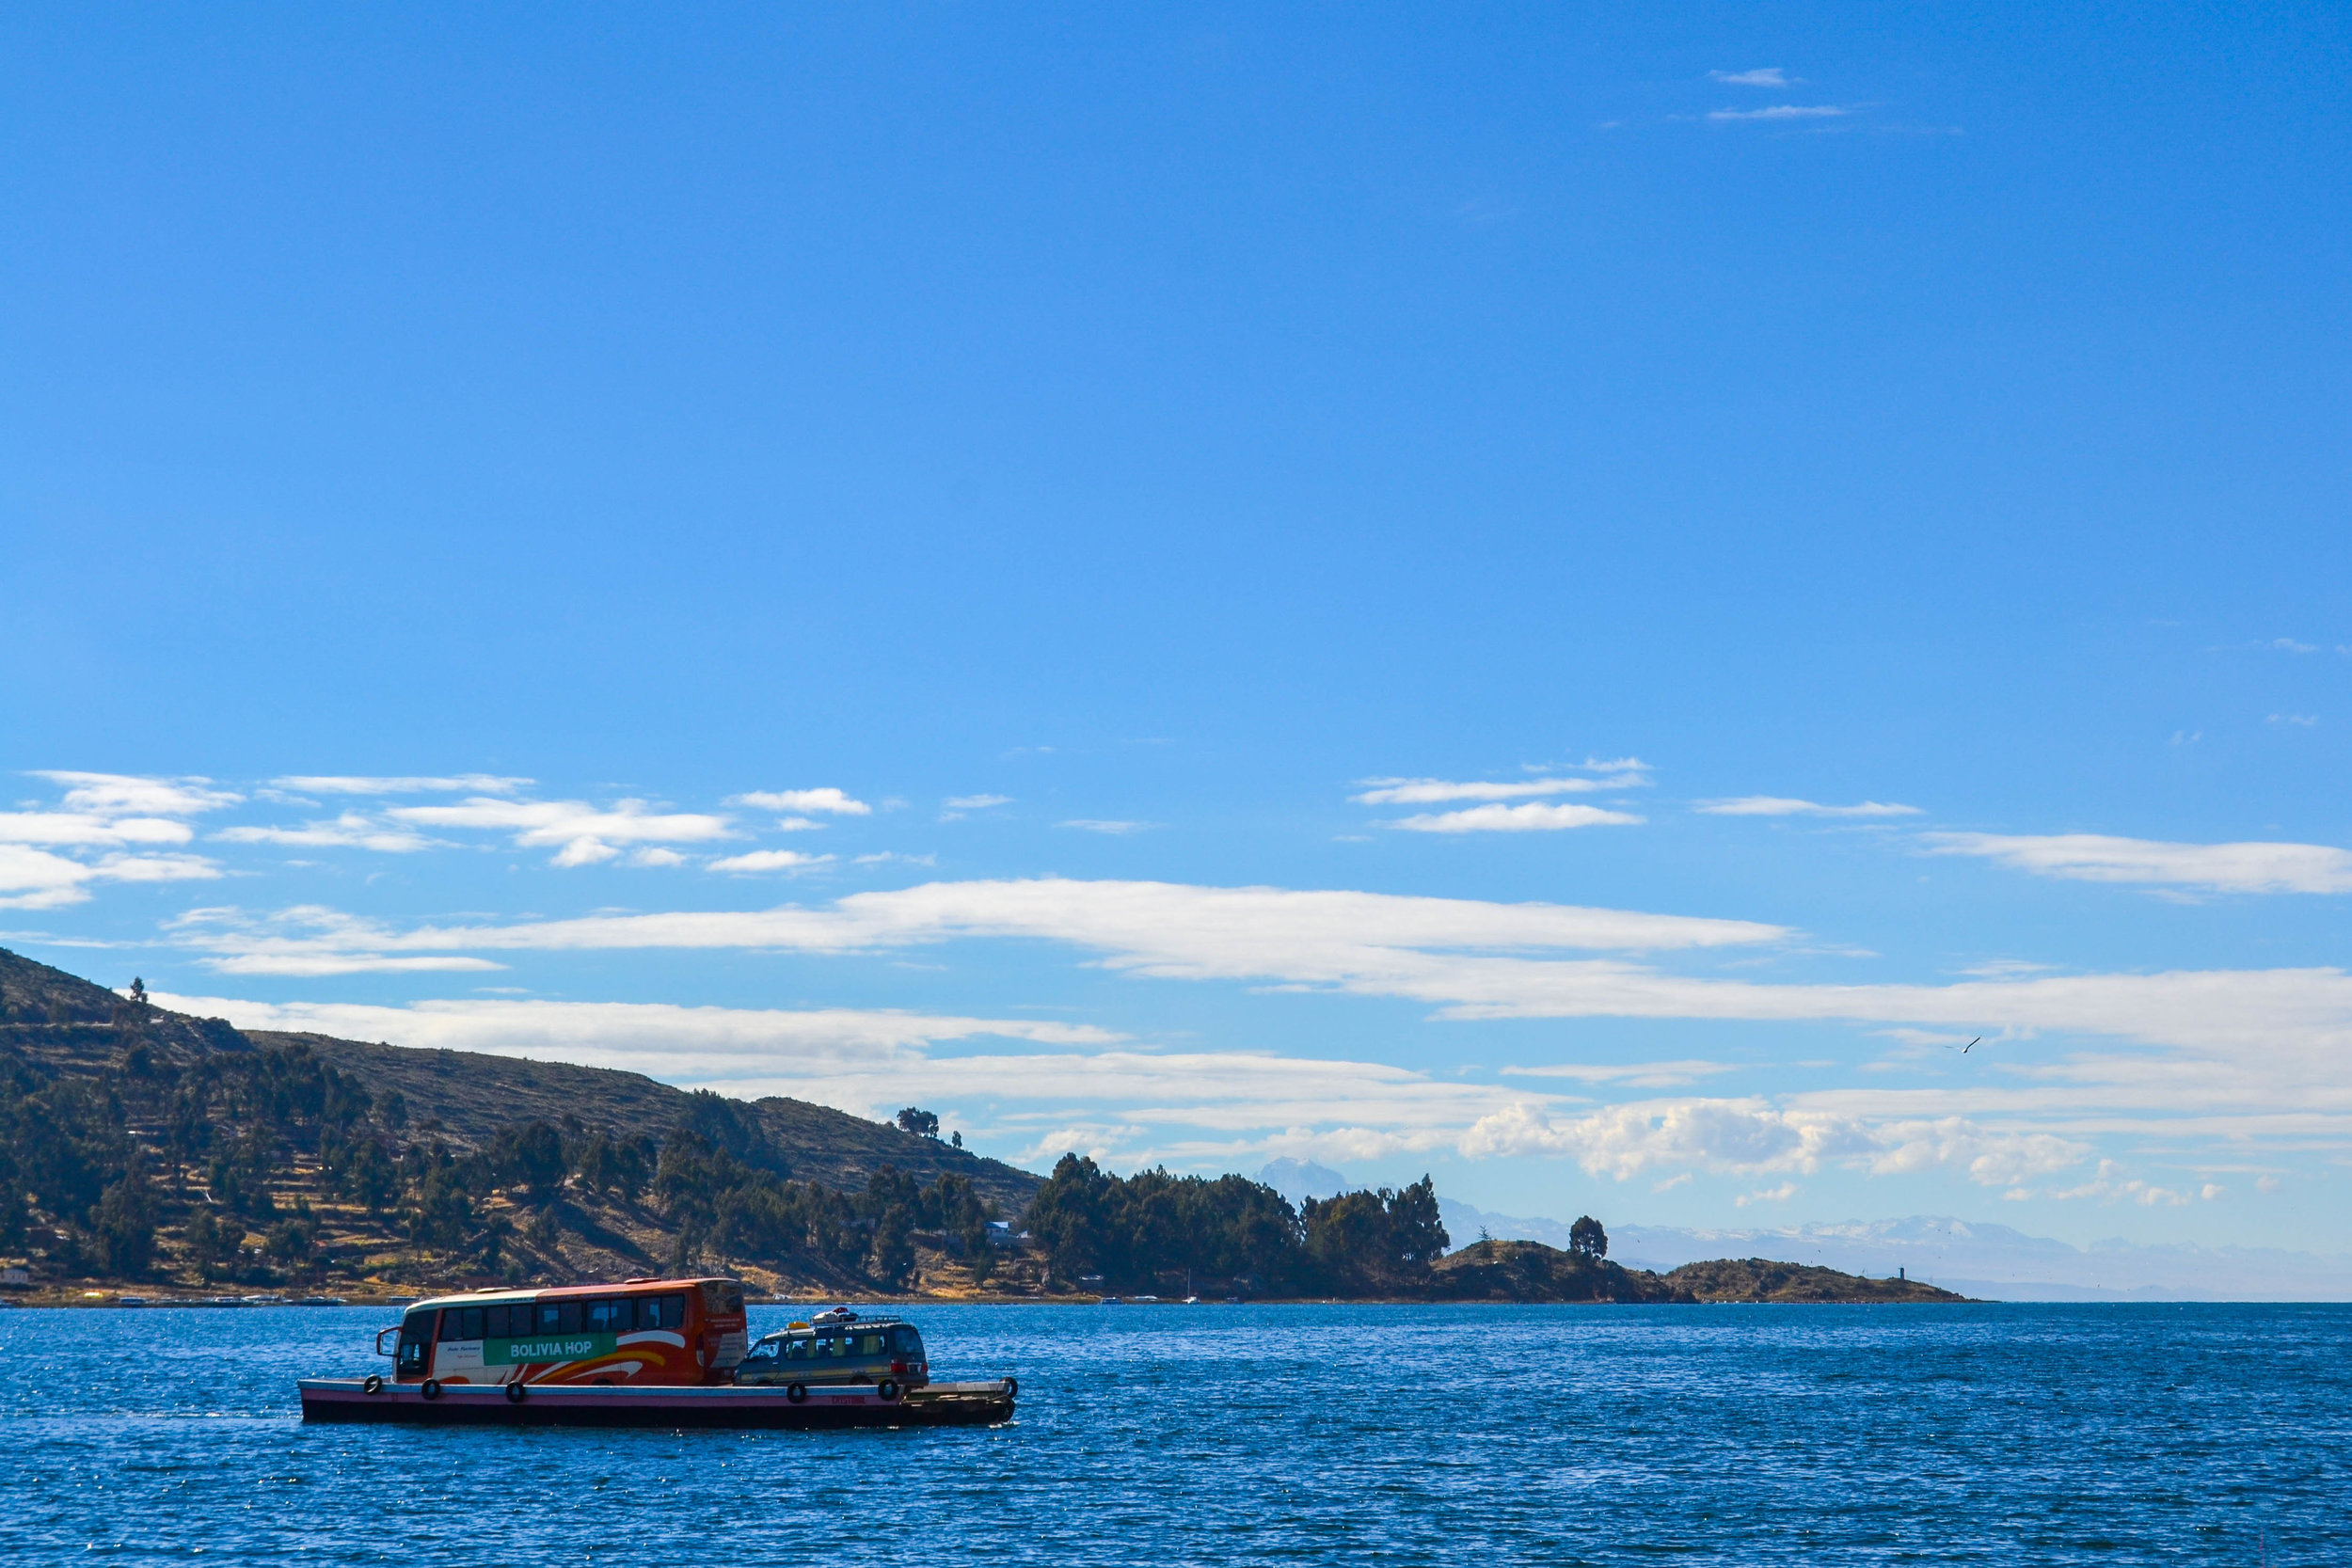 Crossing the Strait of Tiquina